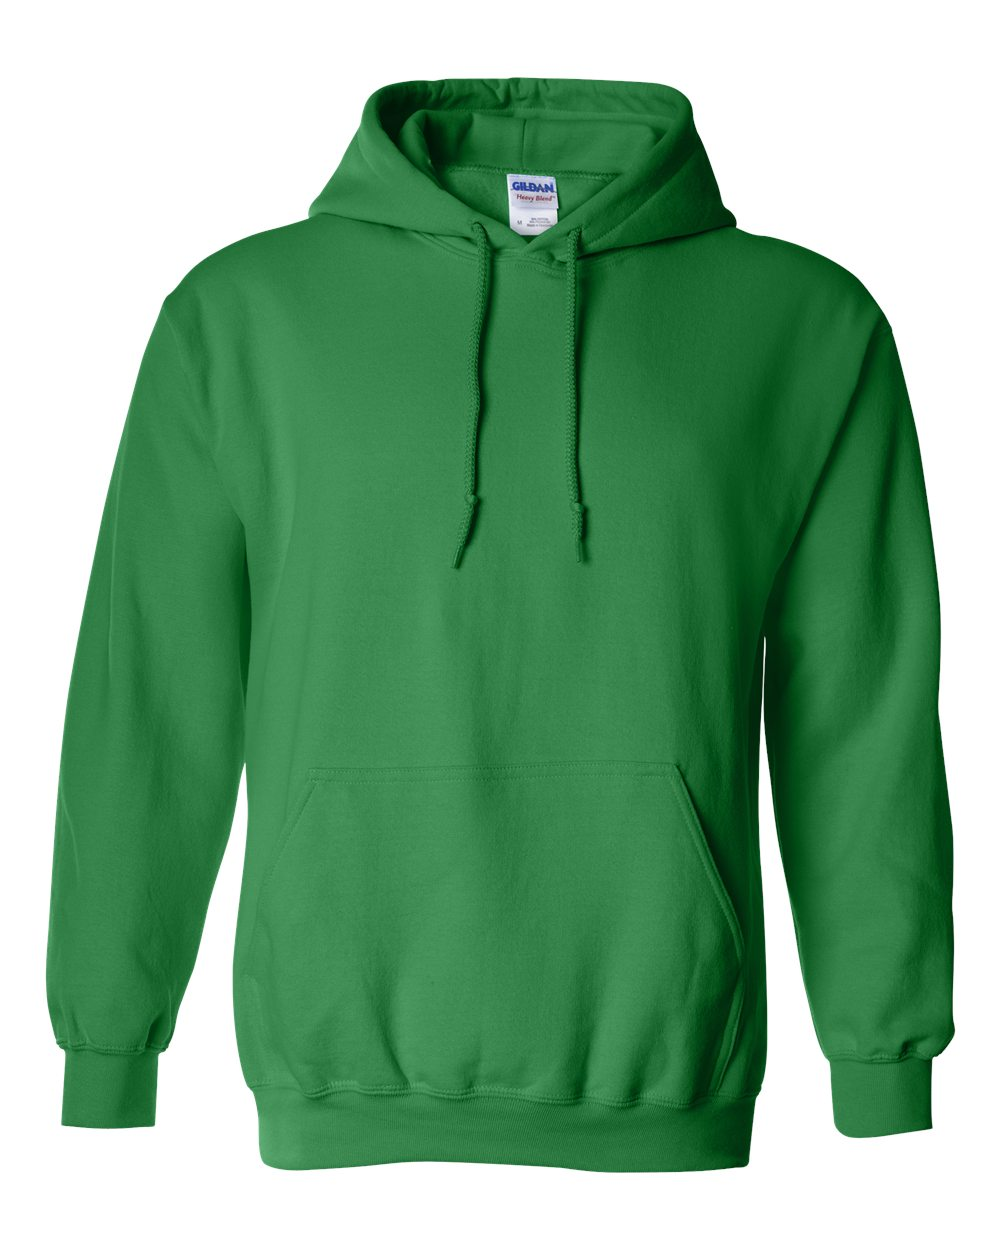 Gildan_18500_Irish_Green_Front_High.jpg